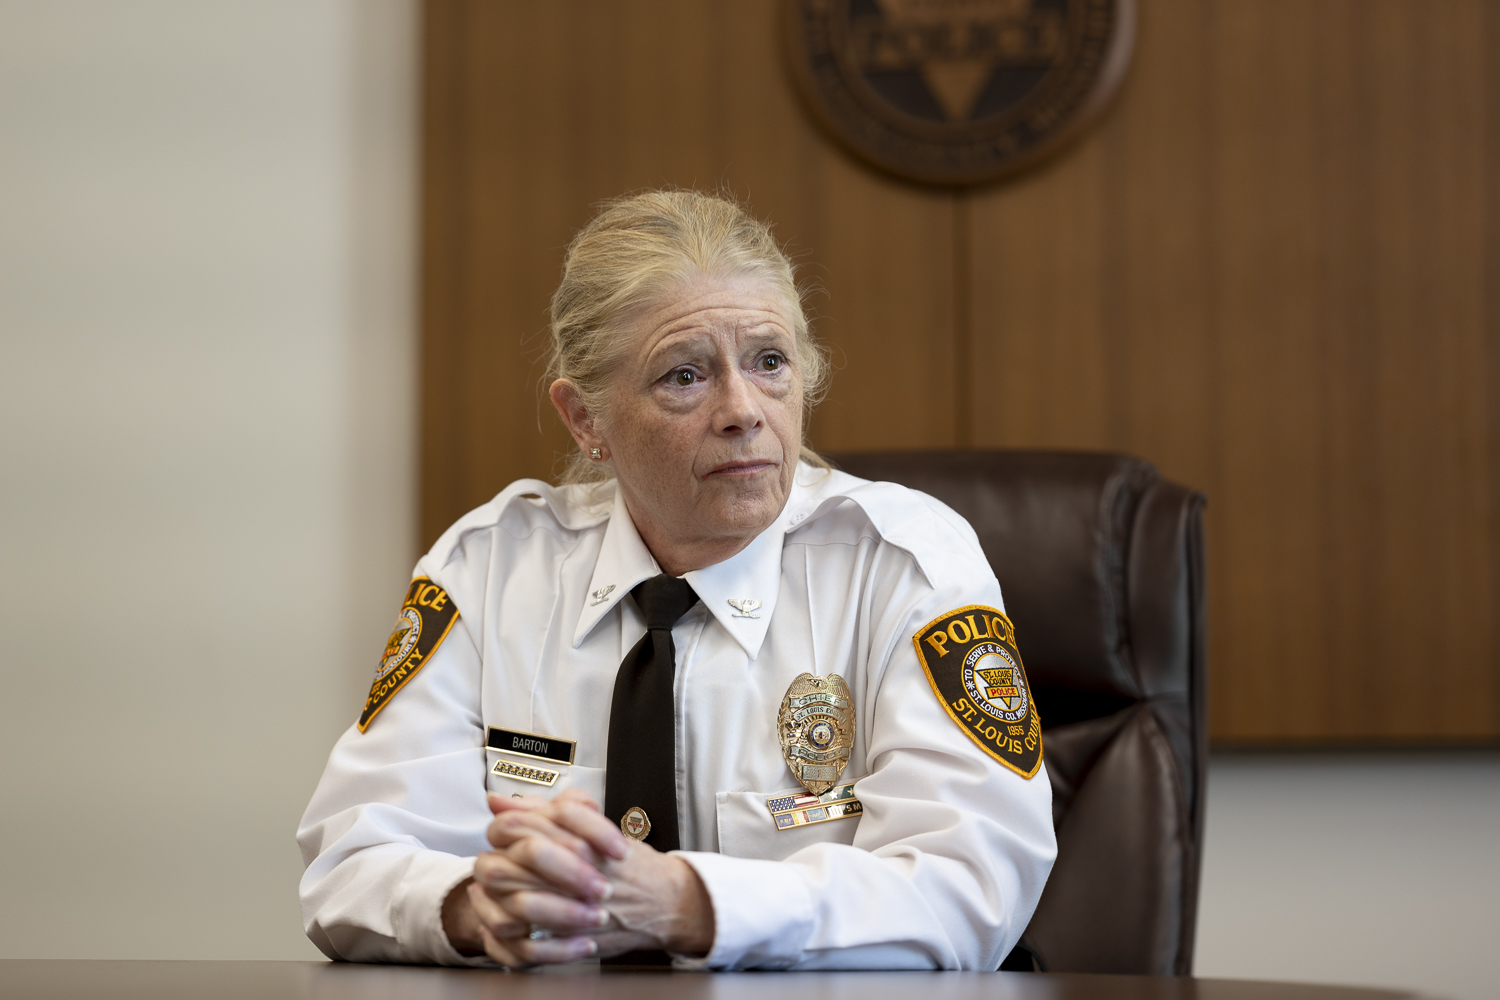 St. Louis County Police Chief Mary Barton Retires